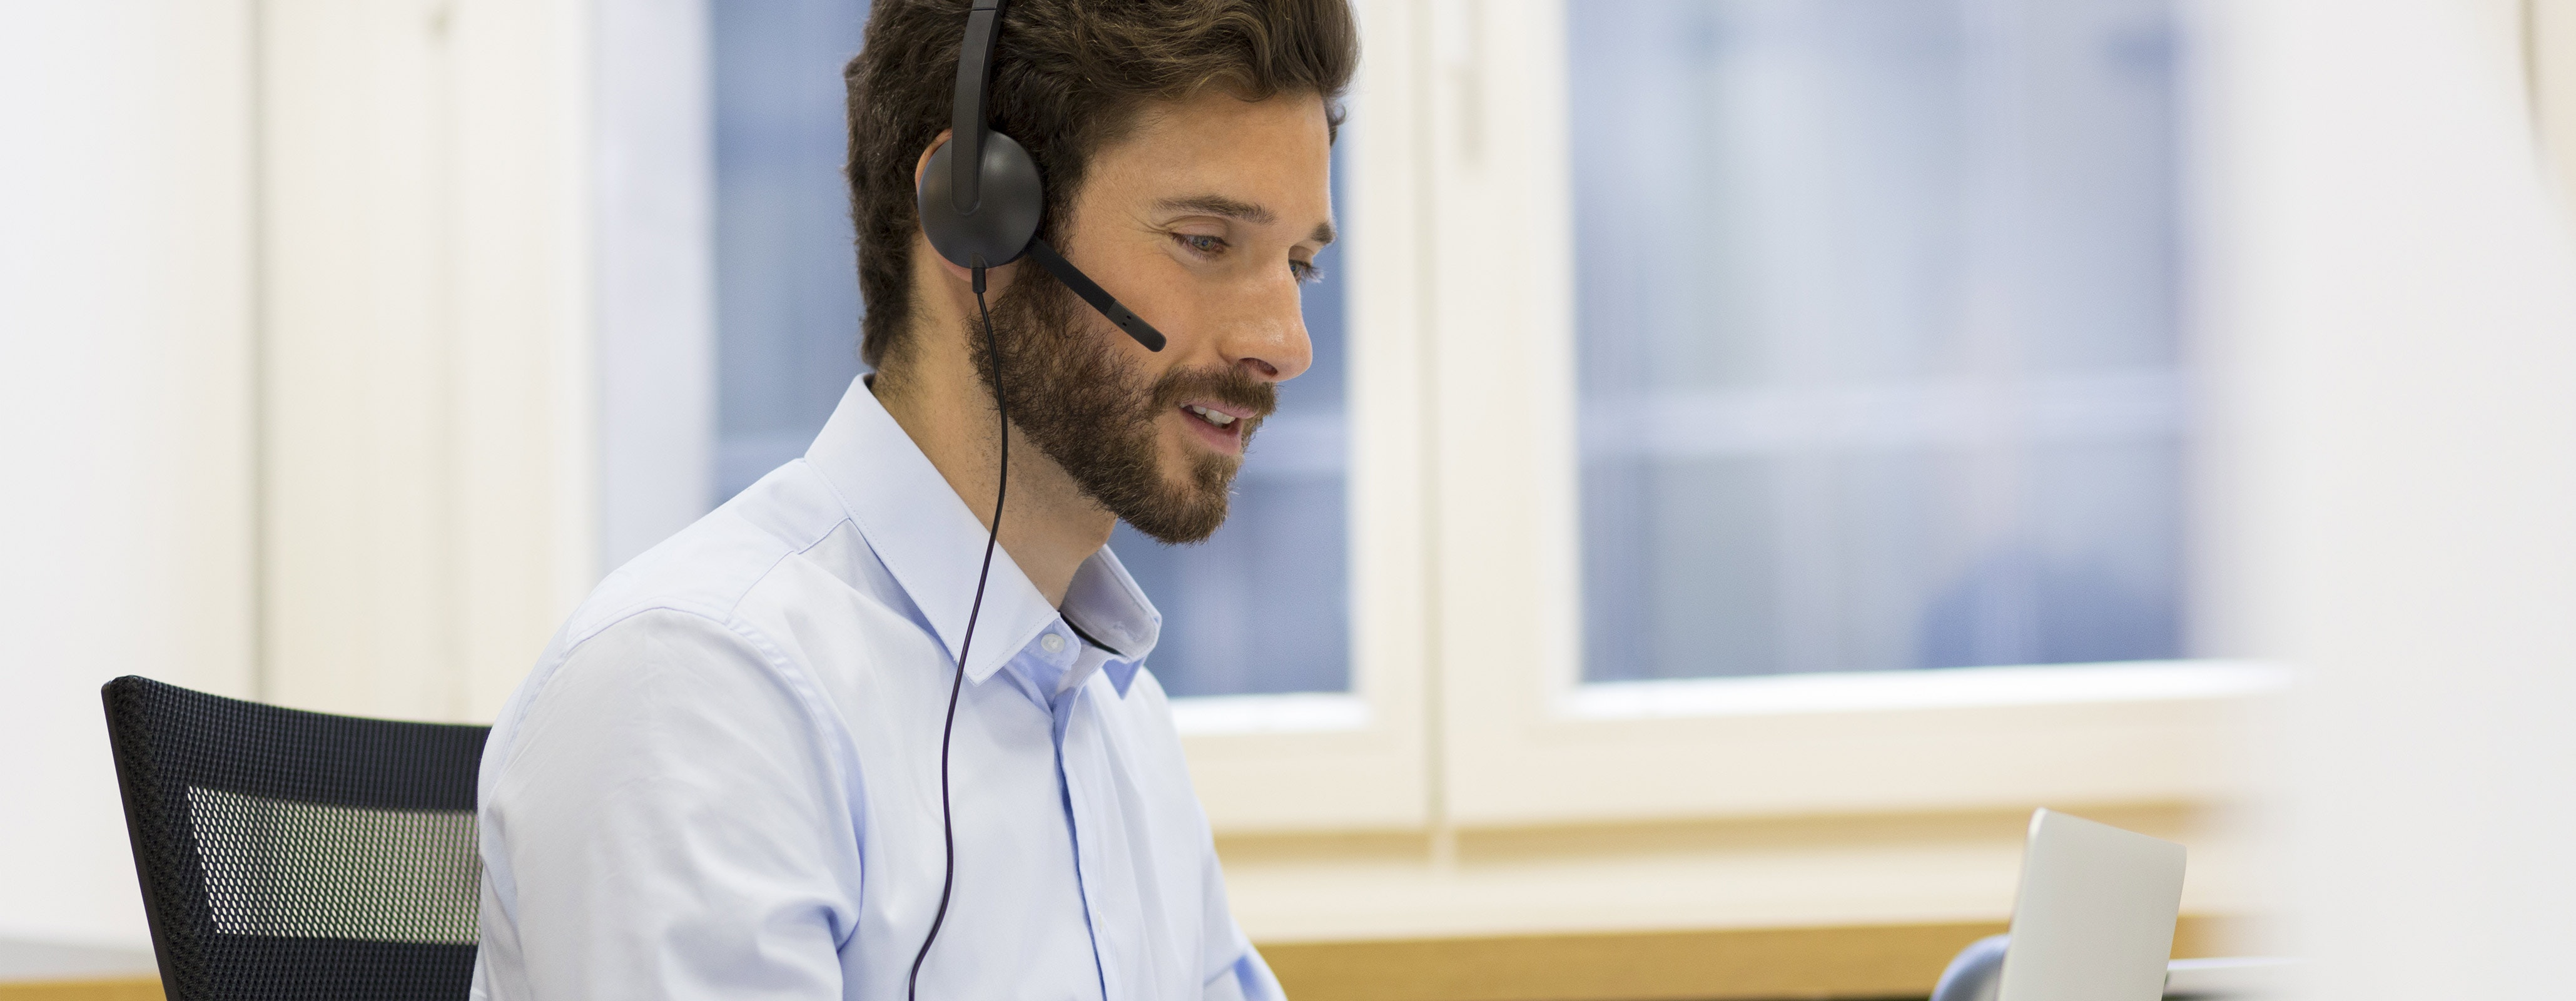 Collega is het contactcenter